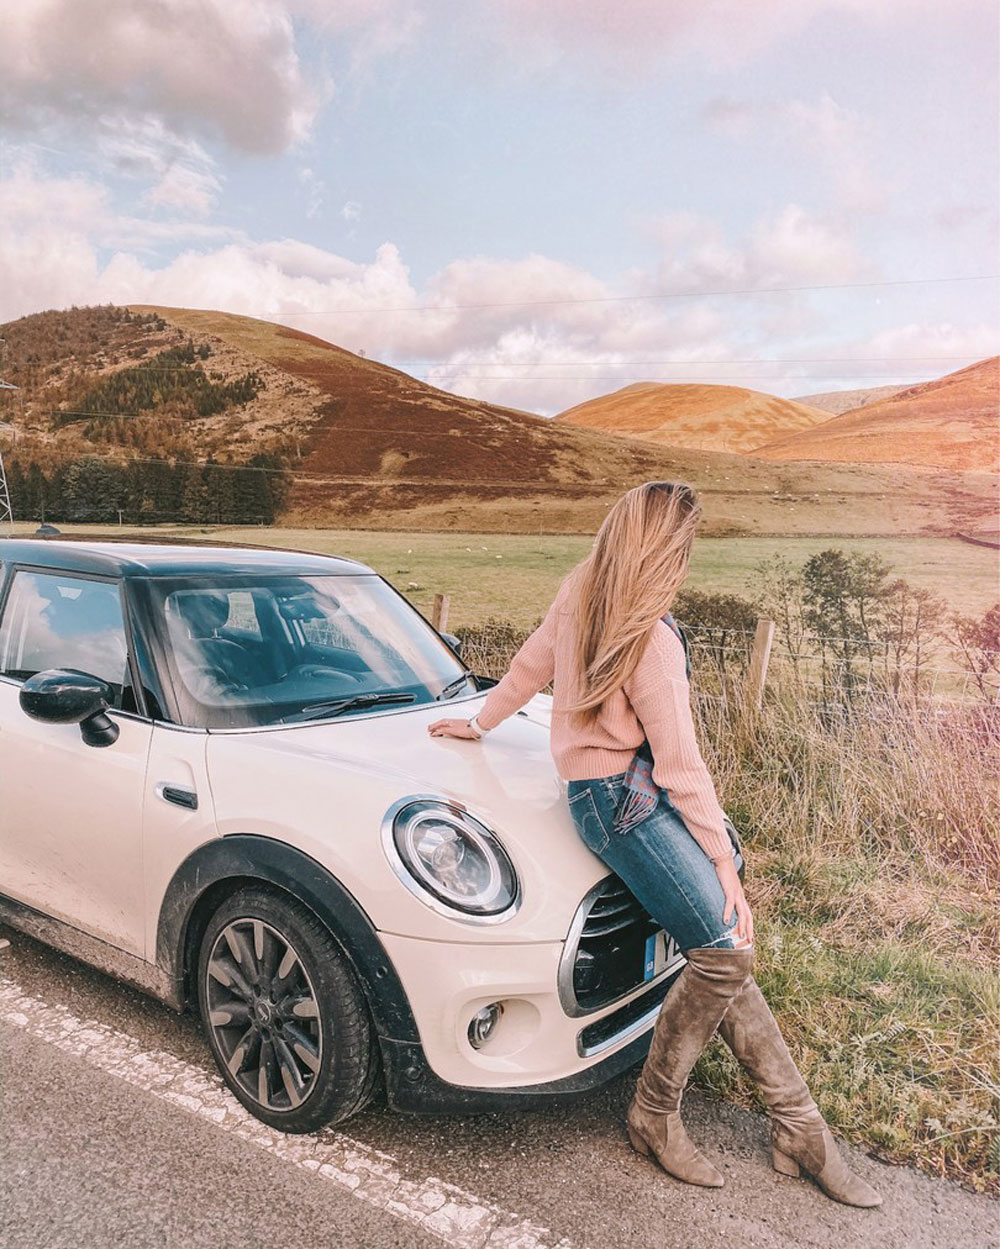 travel blogger Amanda Martin of Amanda's OK Blog rented a Mini Cooper to travel across the UK